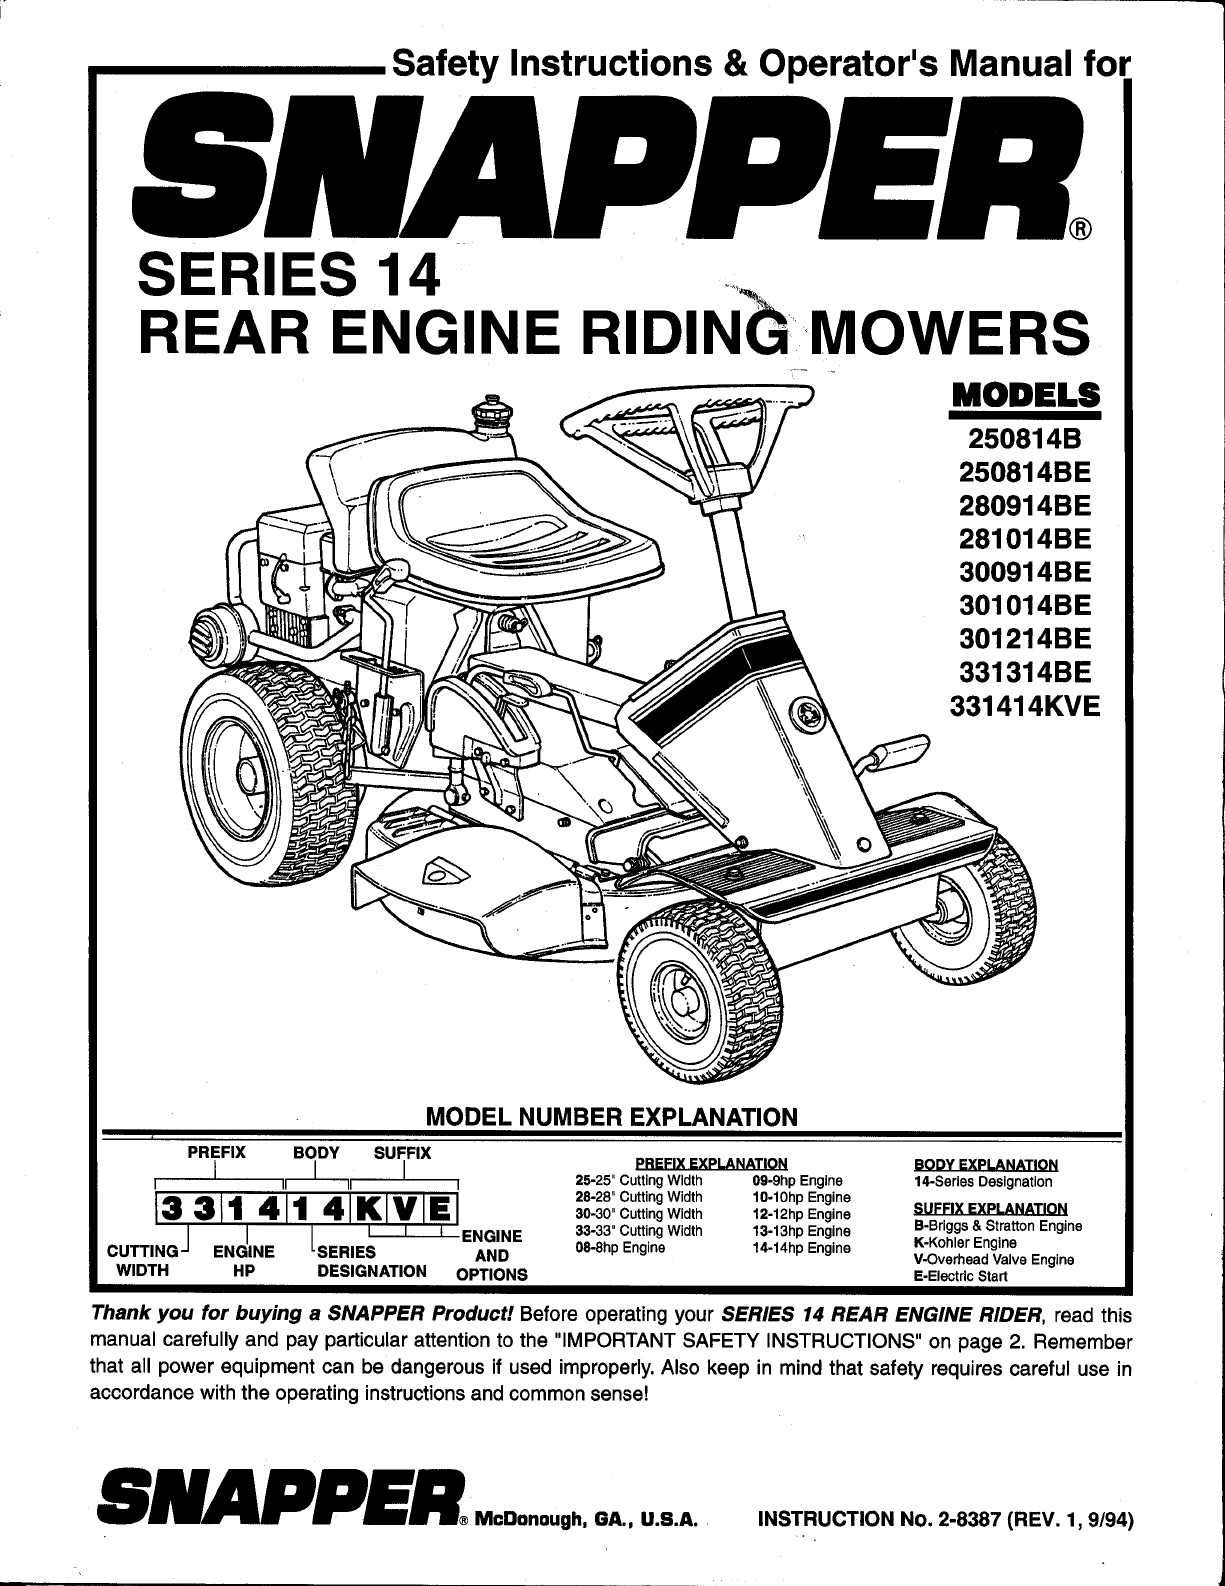 Snapper lawn mower 280914be user guide manualsonline of 24 publicscrutiny Choice Image